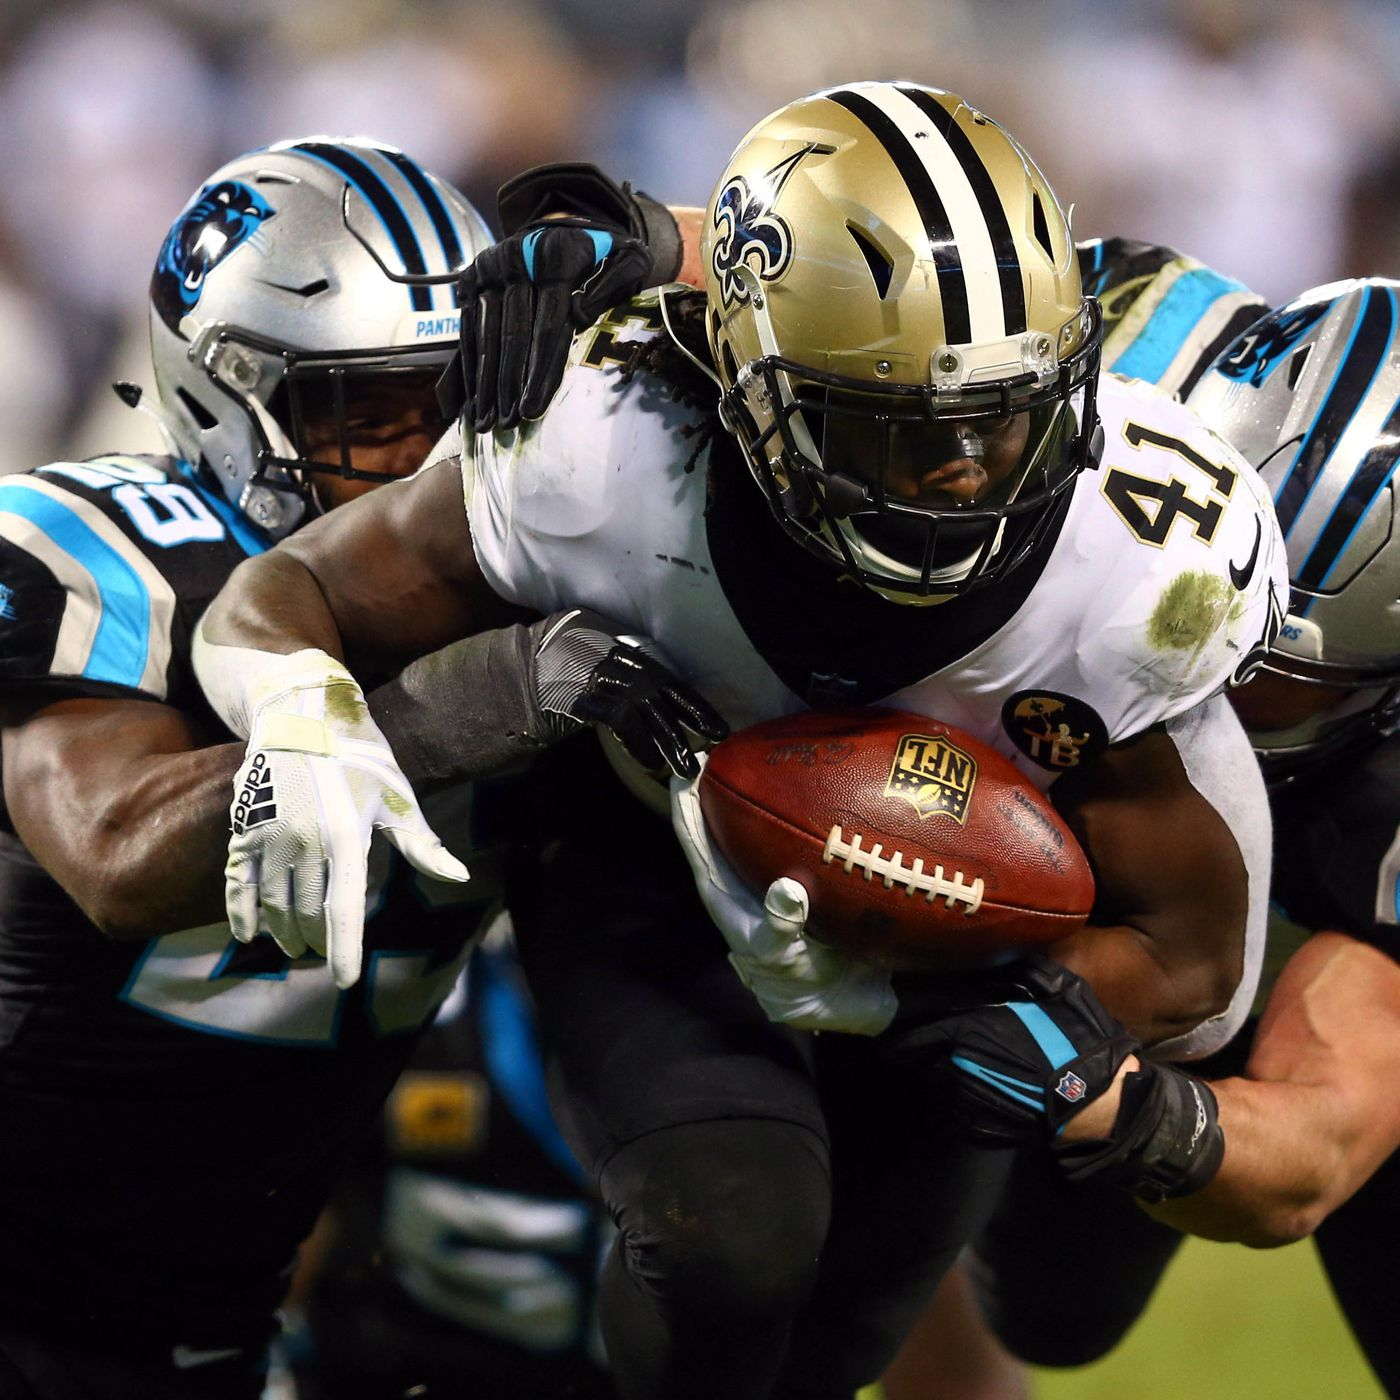 Saints steelers betting line ufc 157 betting predictions for today